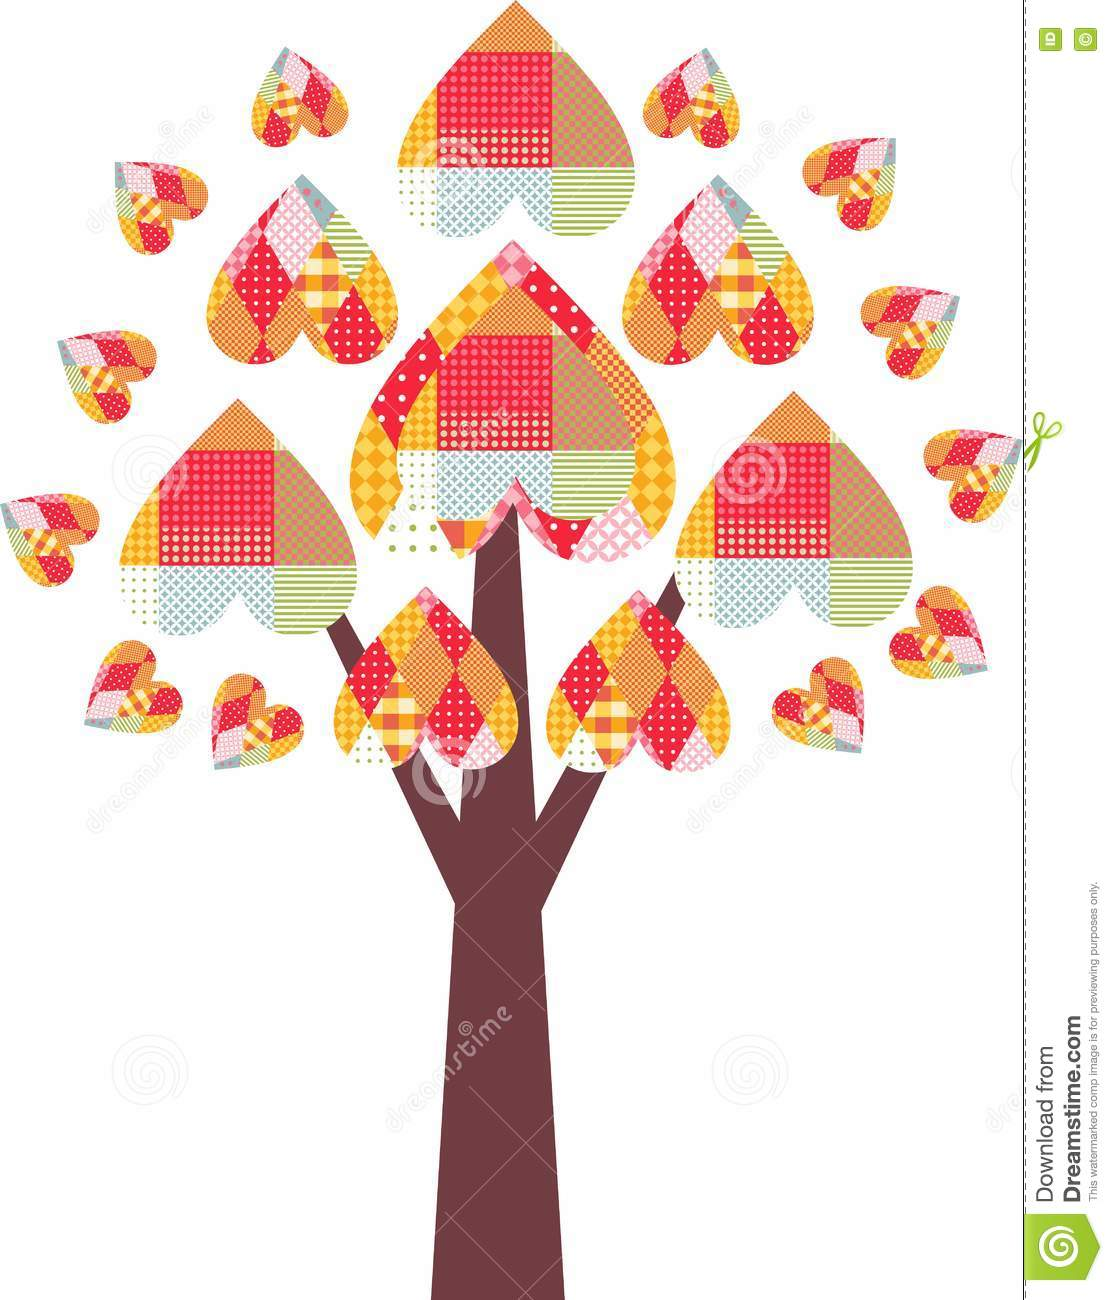 Colorful valentines day hearts on tree royalty free stock